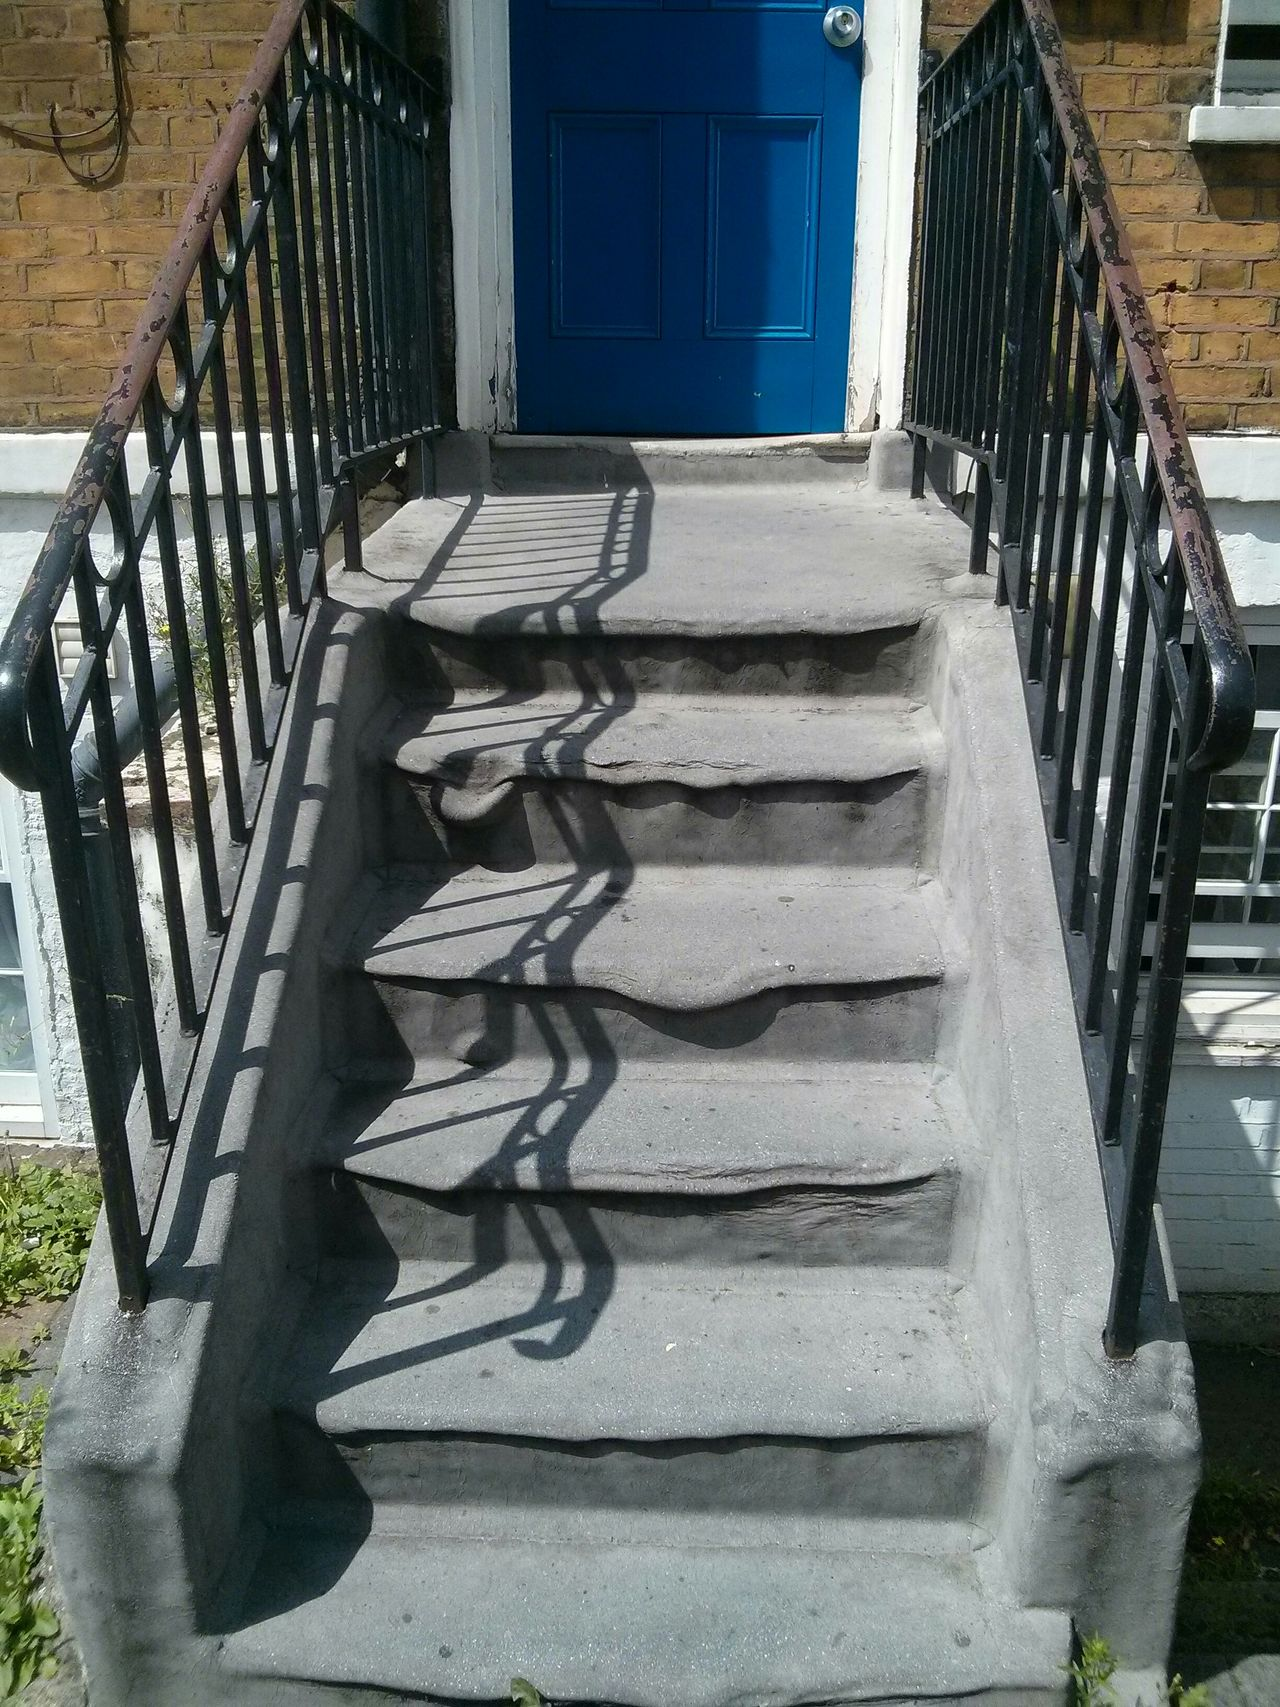 Heatwave Heat Melting Melting Stairs Melting Staircase Extreme Heat Boiling London Entrance Gate Door Stairs Salvador Dali Real Life Surrealism